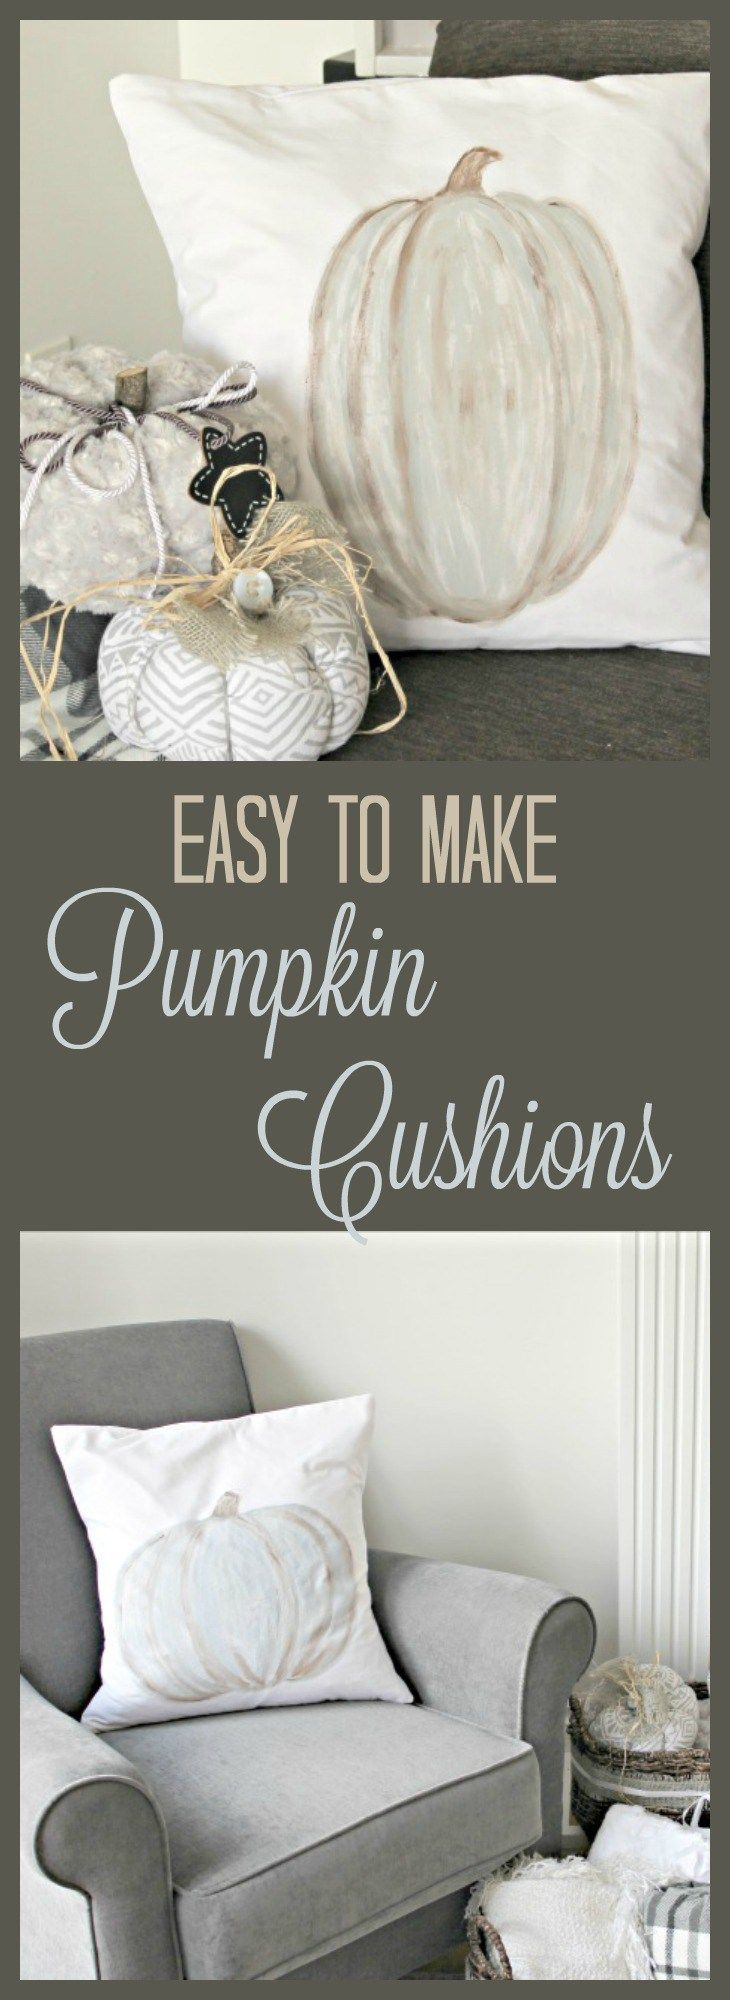 DIY Painted Pumpkin Cushions